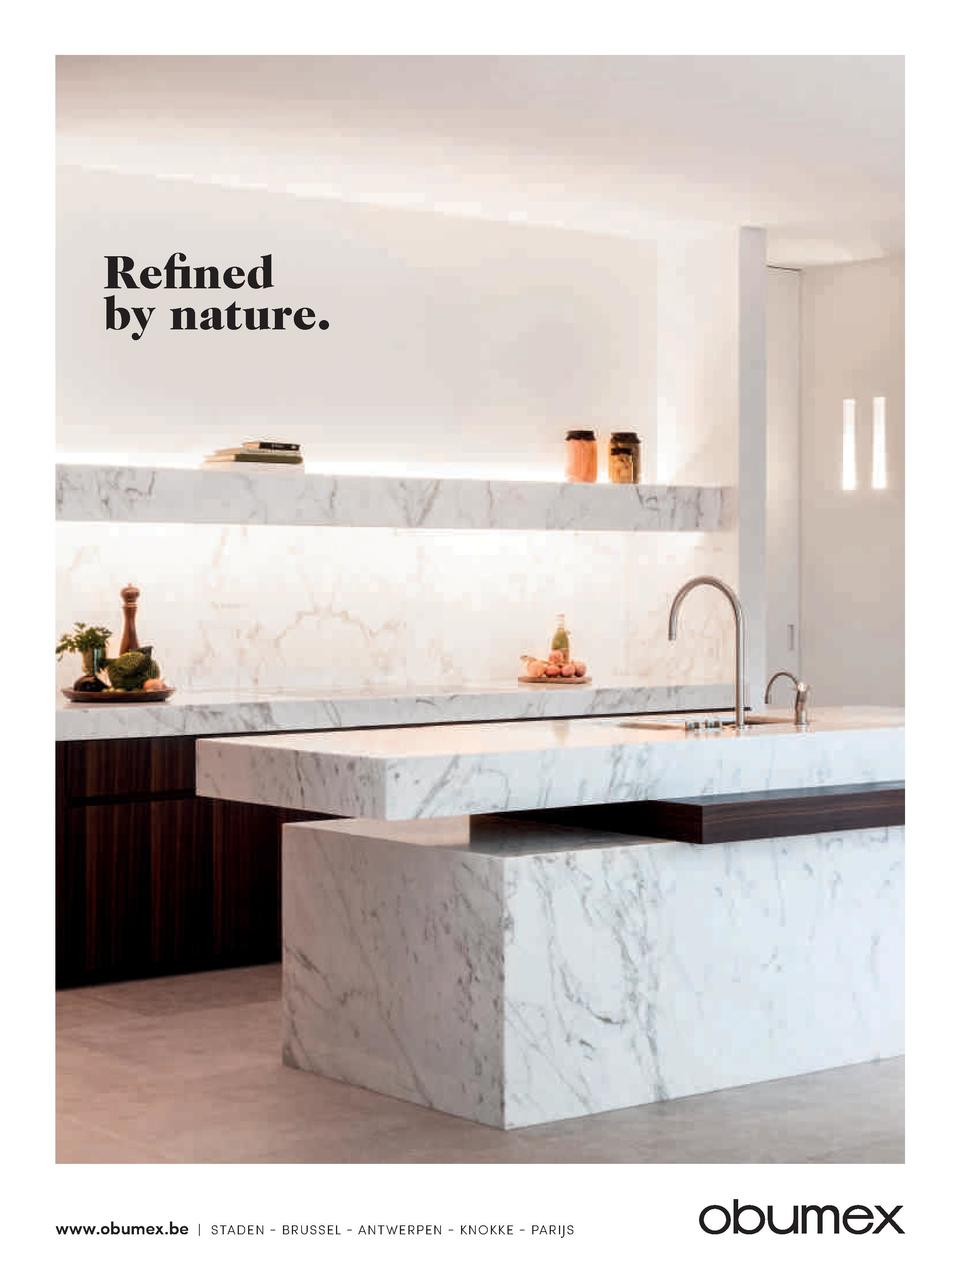 Refined by nature.  www.obumex.be    STADEN - BRUSSEL - ANTWERPEN - KNOKKE - PARIJS